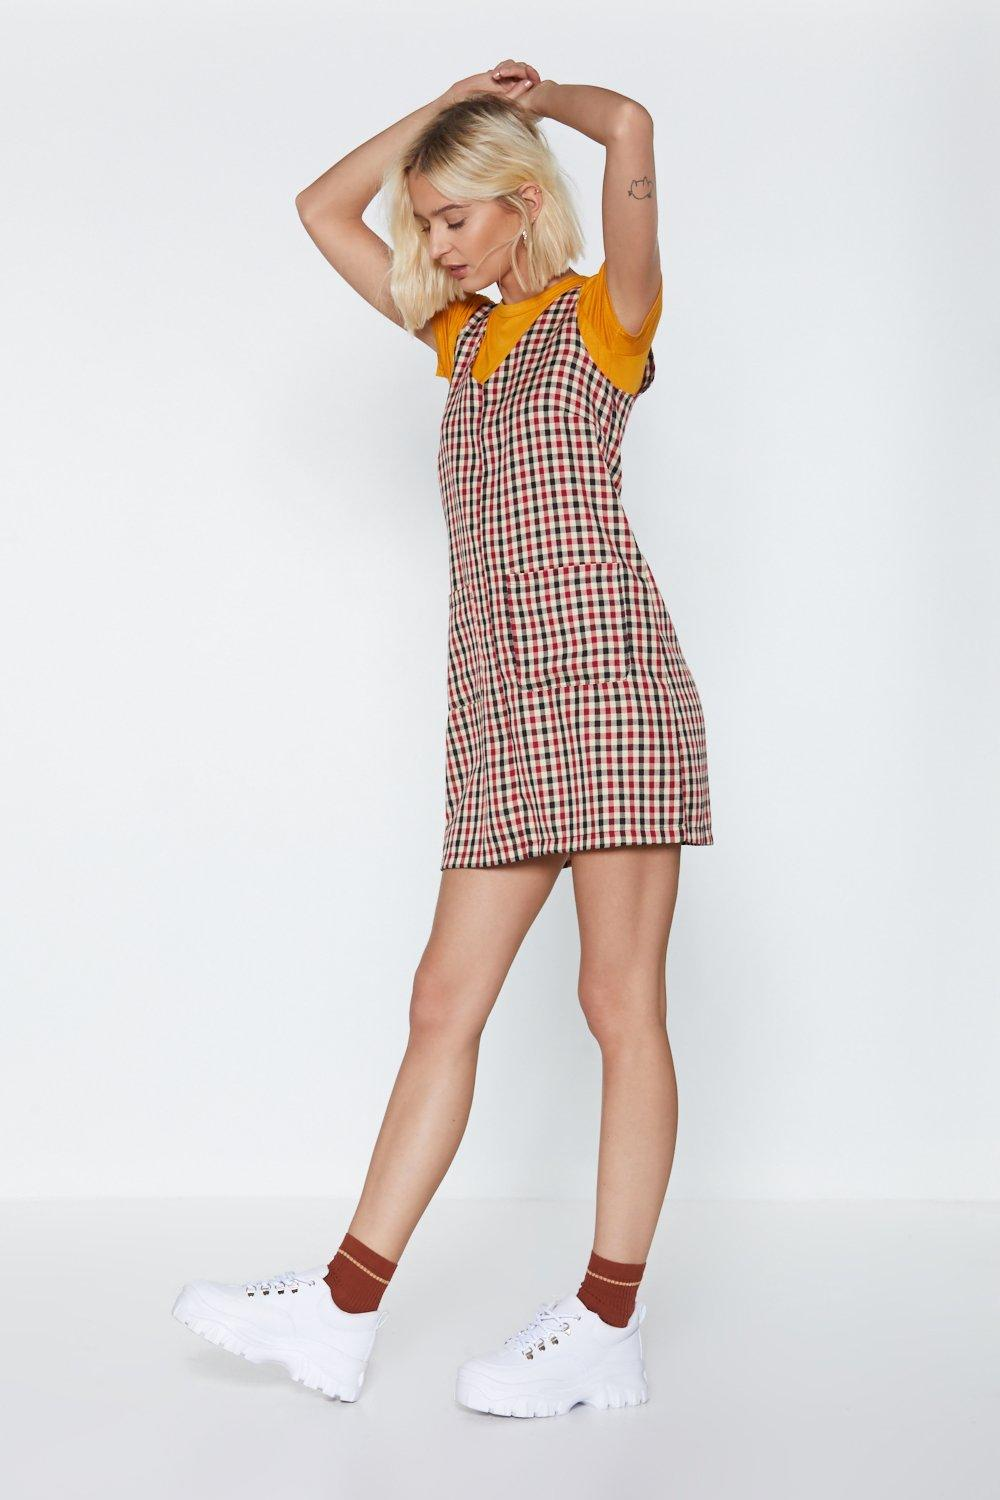 926245010f6 Womens Beige Plaid Games Pinafore Dress. Hover to zoom